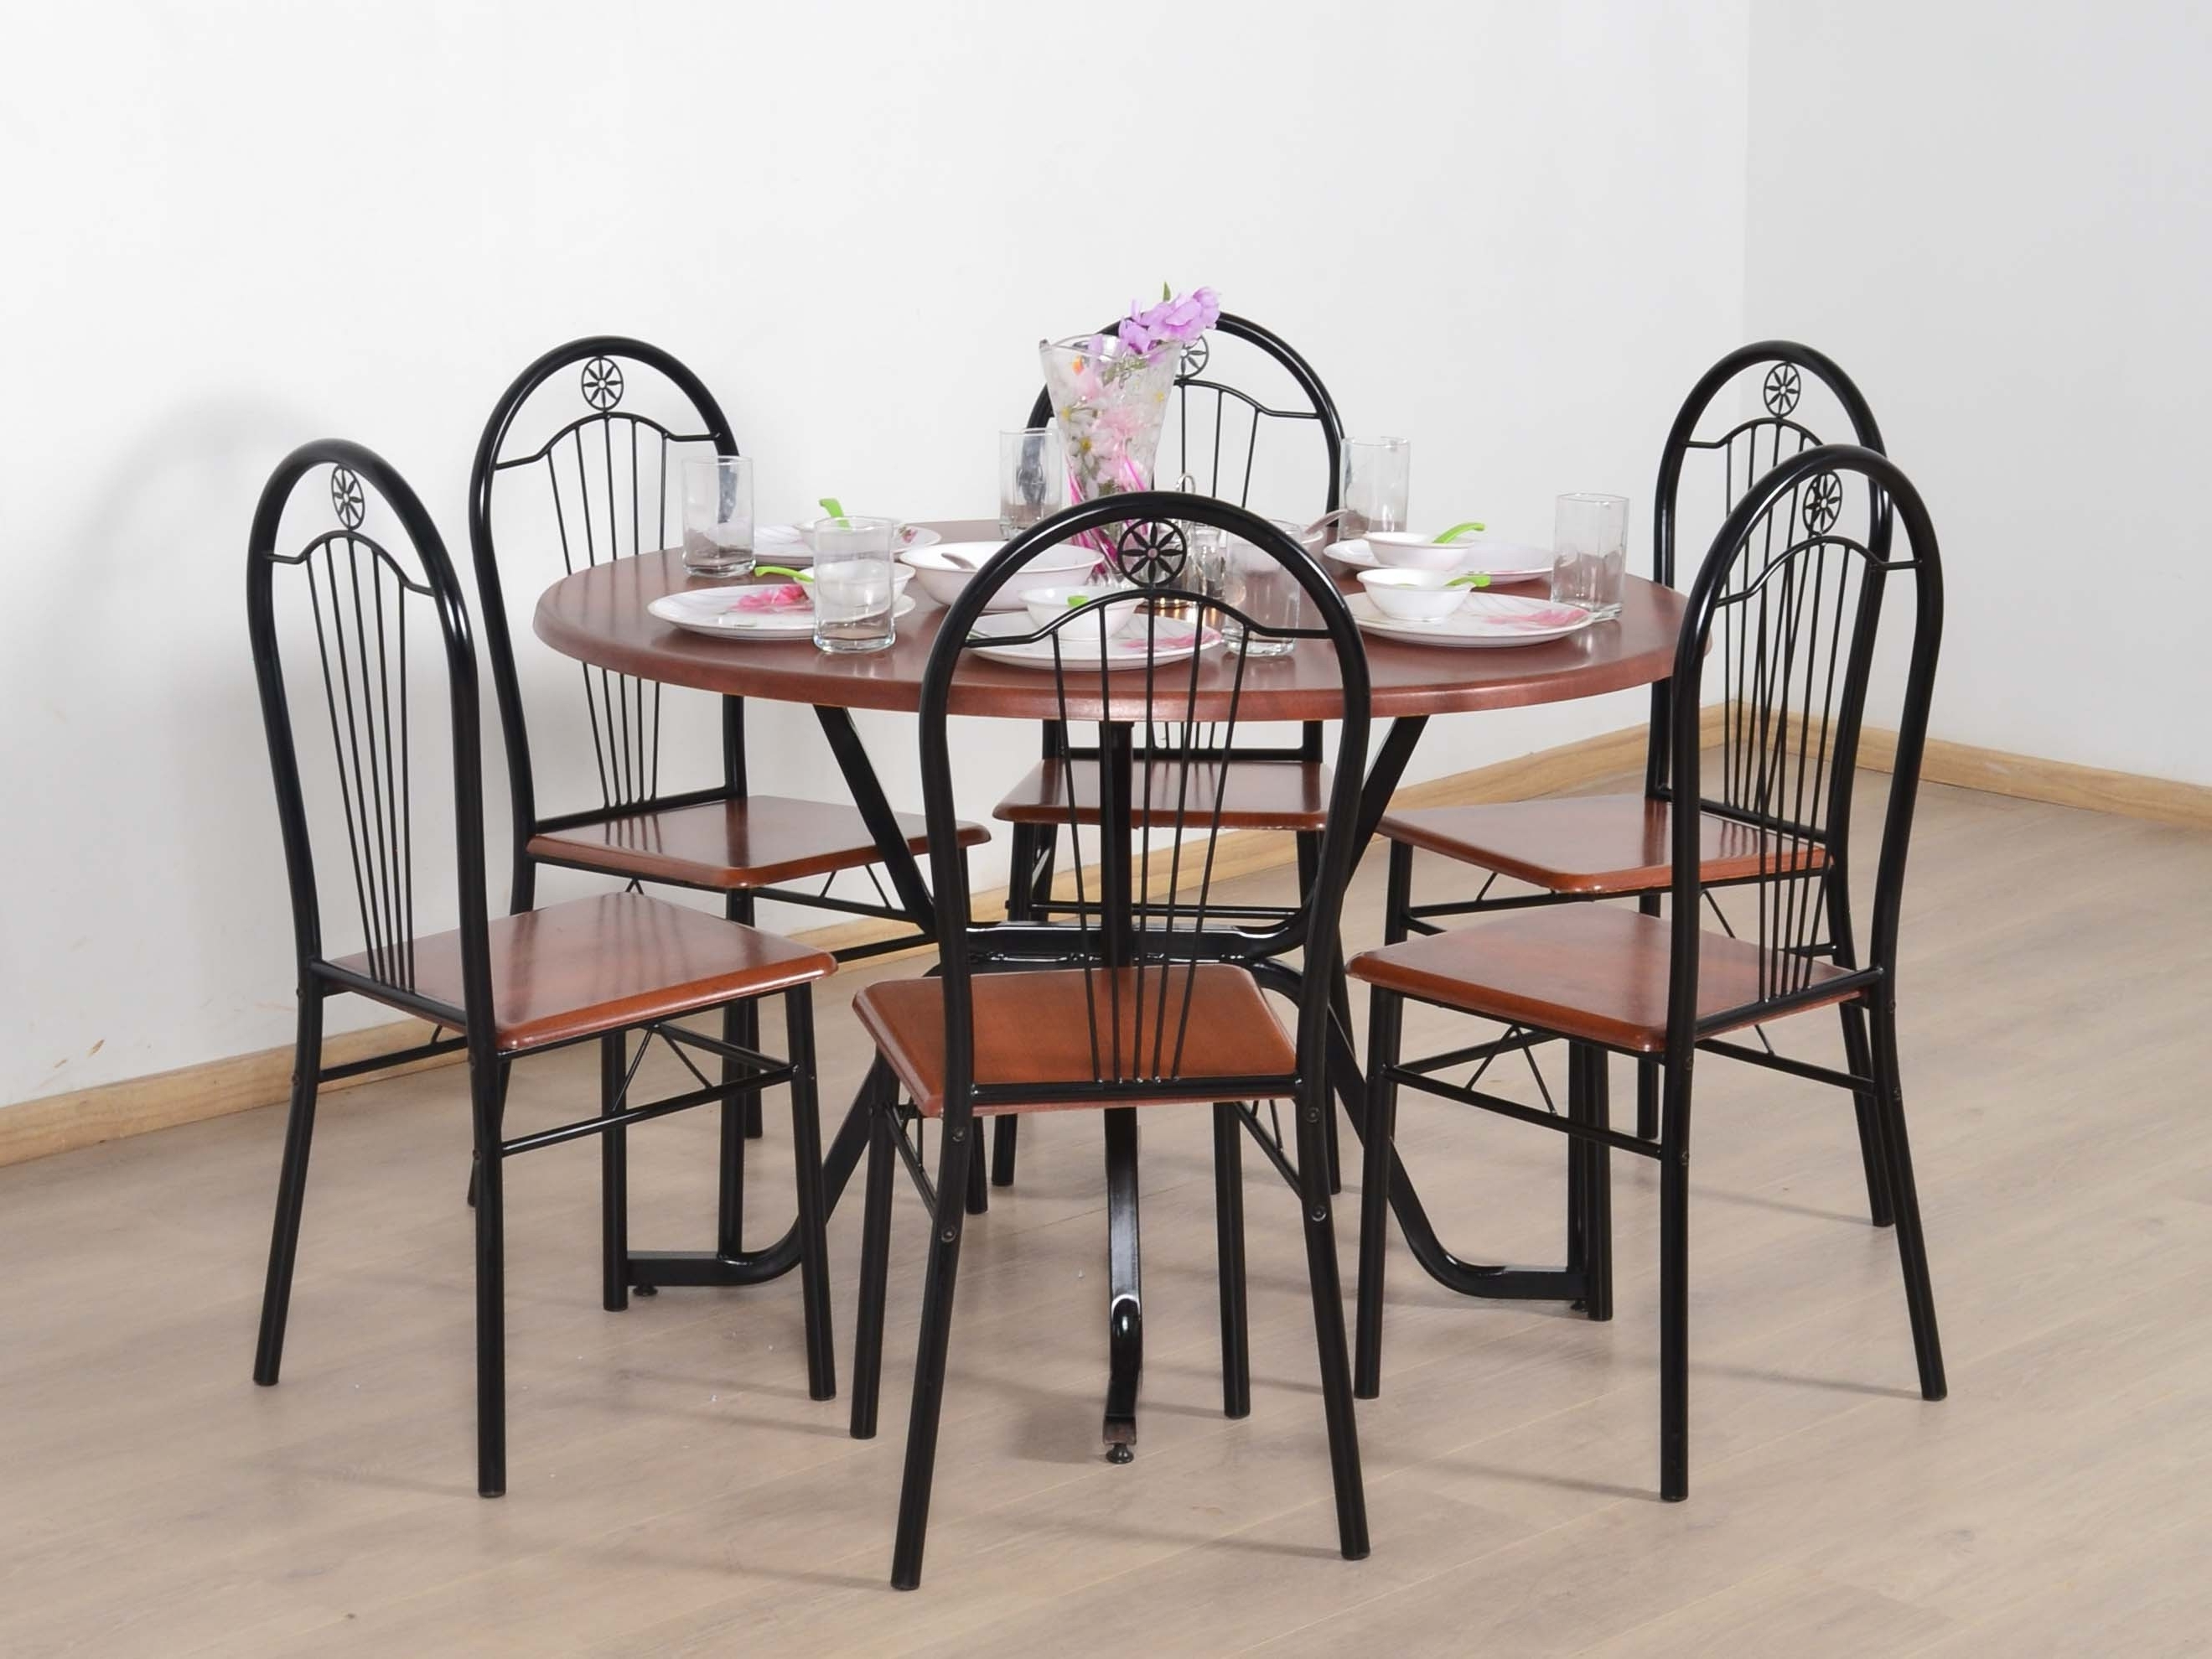 2017 Round 6 Seater Dining Tables Intended For Caterva 6 Seater Round Dining Table Set: Buy And Sell Used Furniture (Gallery 21 of 25)